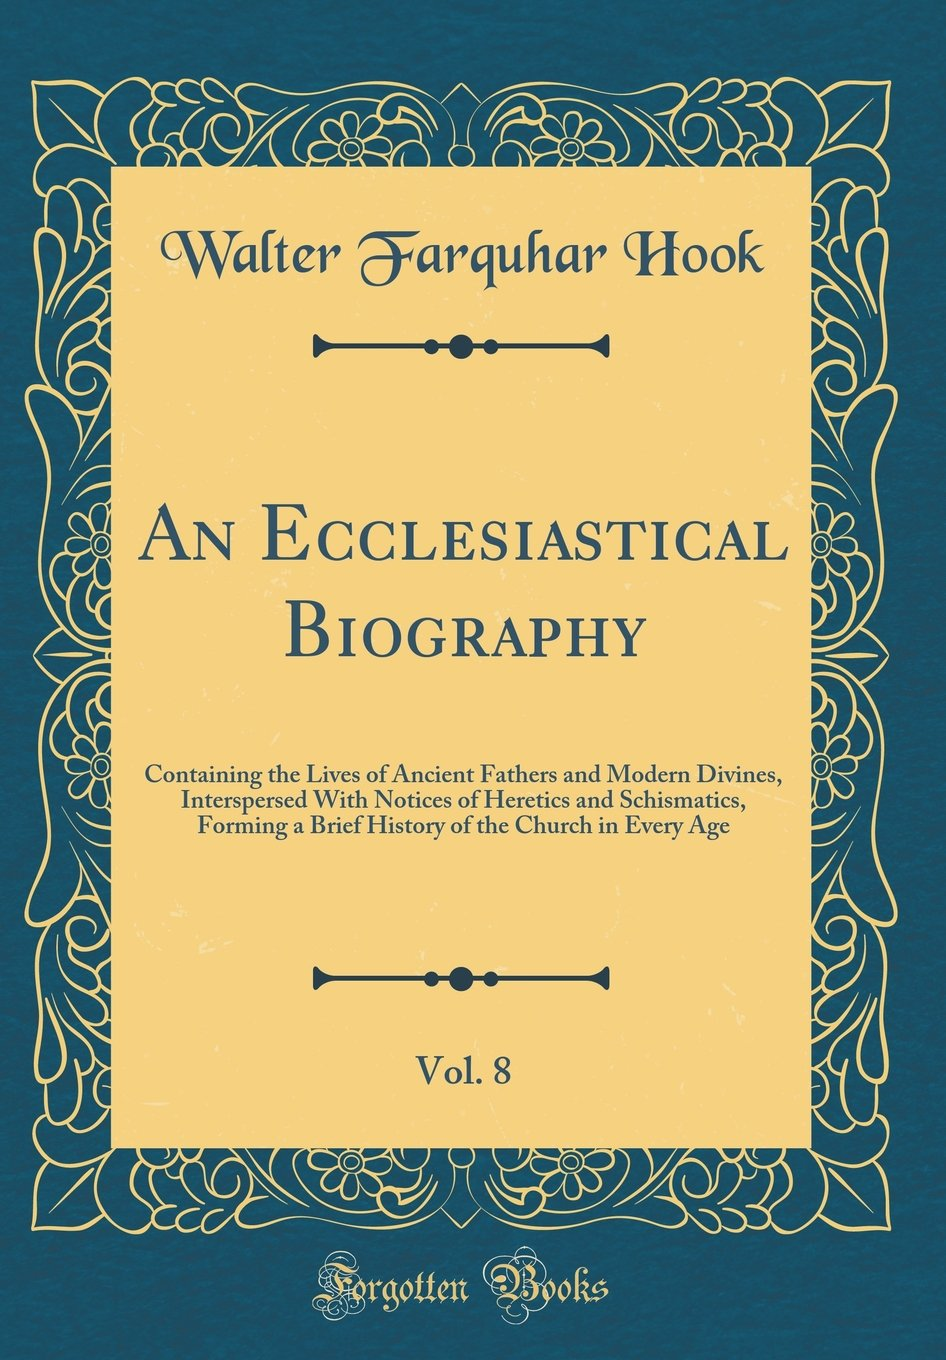 An Ecclesiastical Biography, Vol. 8: Containing the Lives of Ancient Fathers and Modern Divines, Interspersed With Notices of Heretics and ... of the Church in Every Age (Classic Reprint) ebook